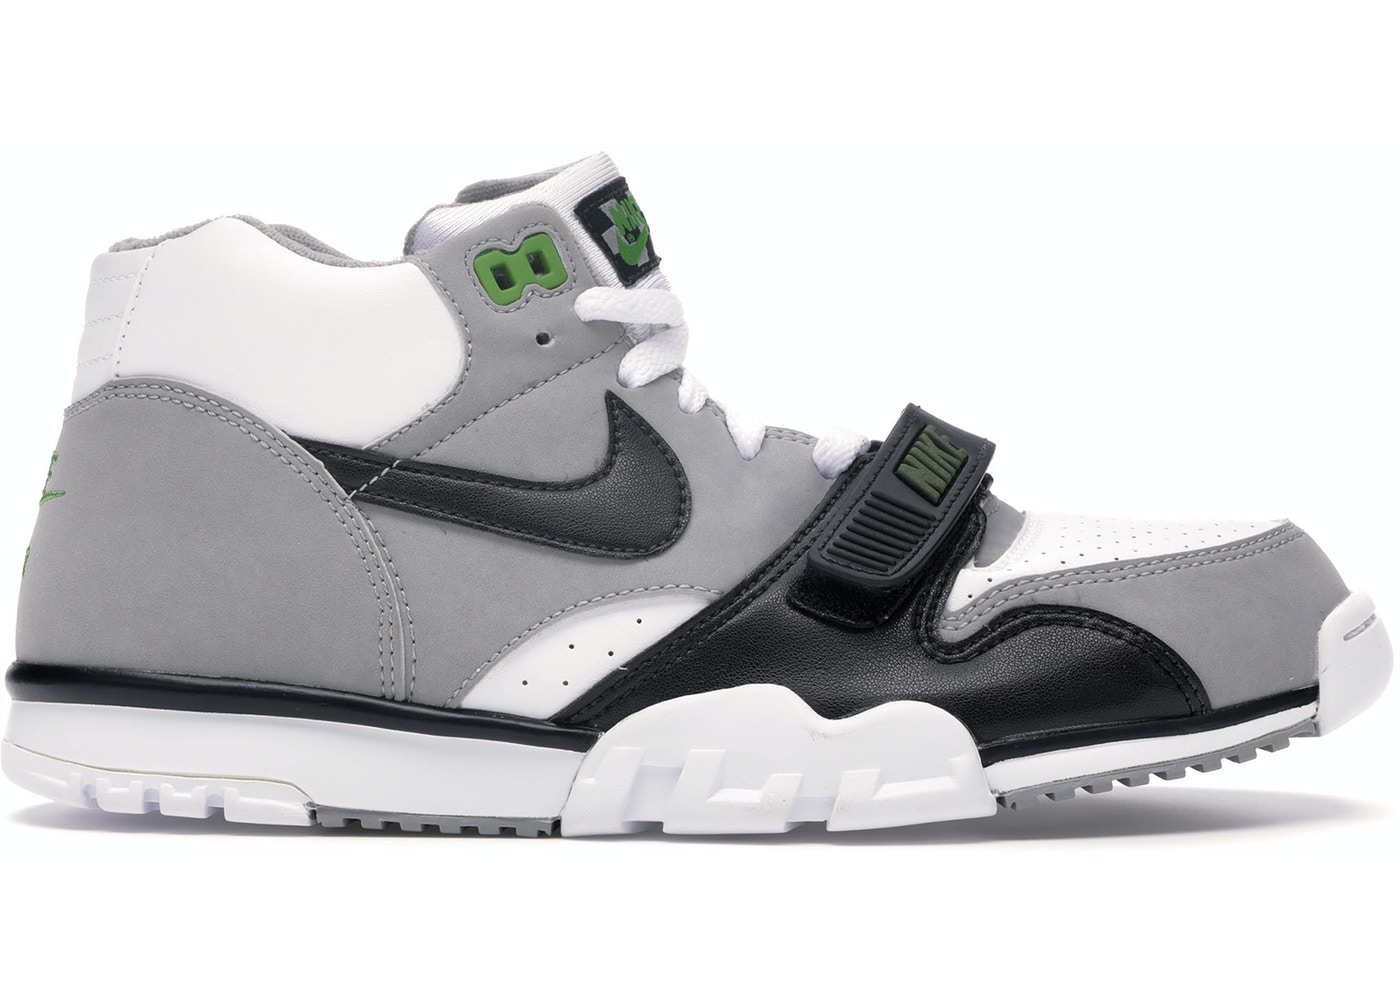 Nike Air Trainer 1 Mid Chlorophyll (2008) - 317553-101